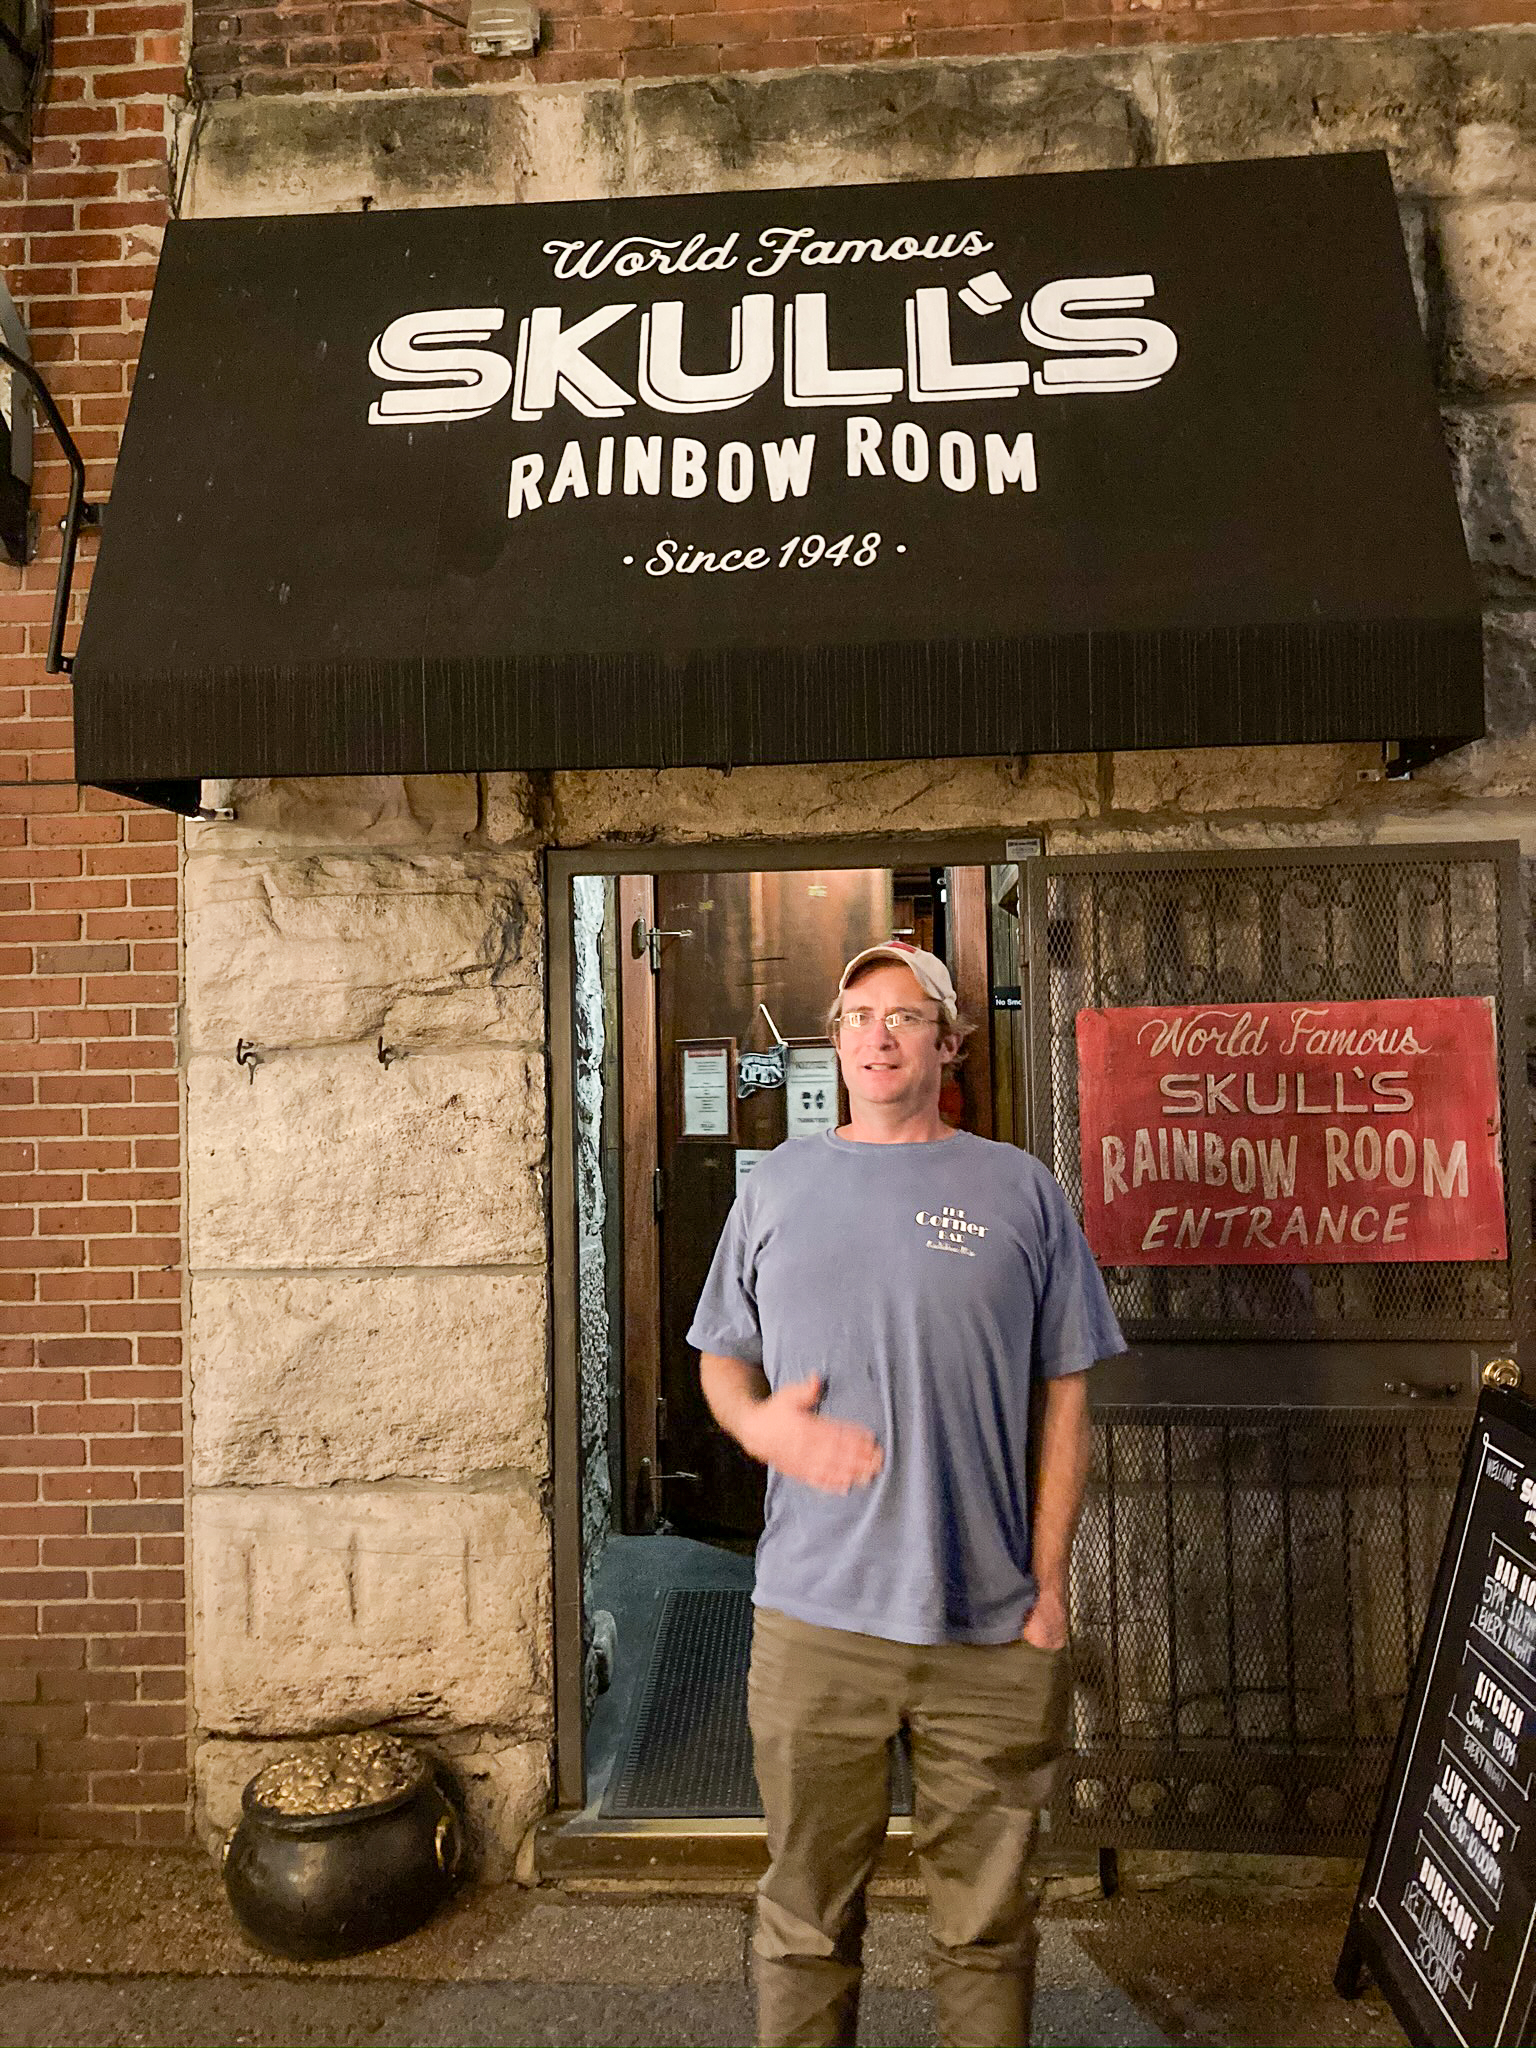 Going to Skulls Rainbow Room for dinner is one of the many things to do in Nashville during the Pandemic